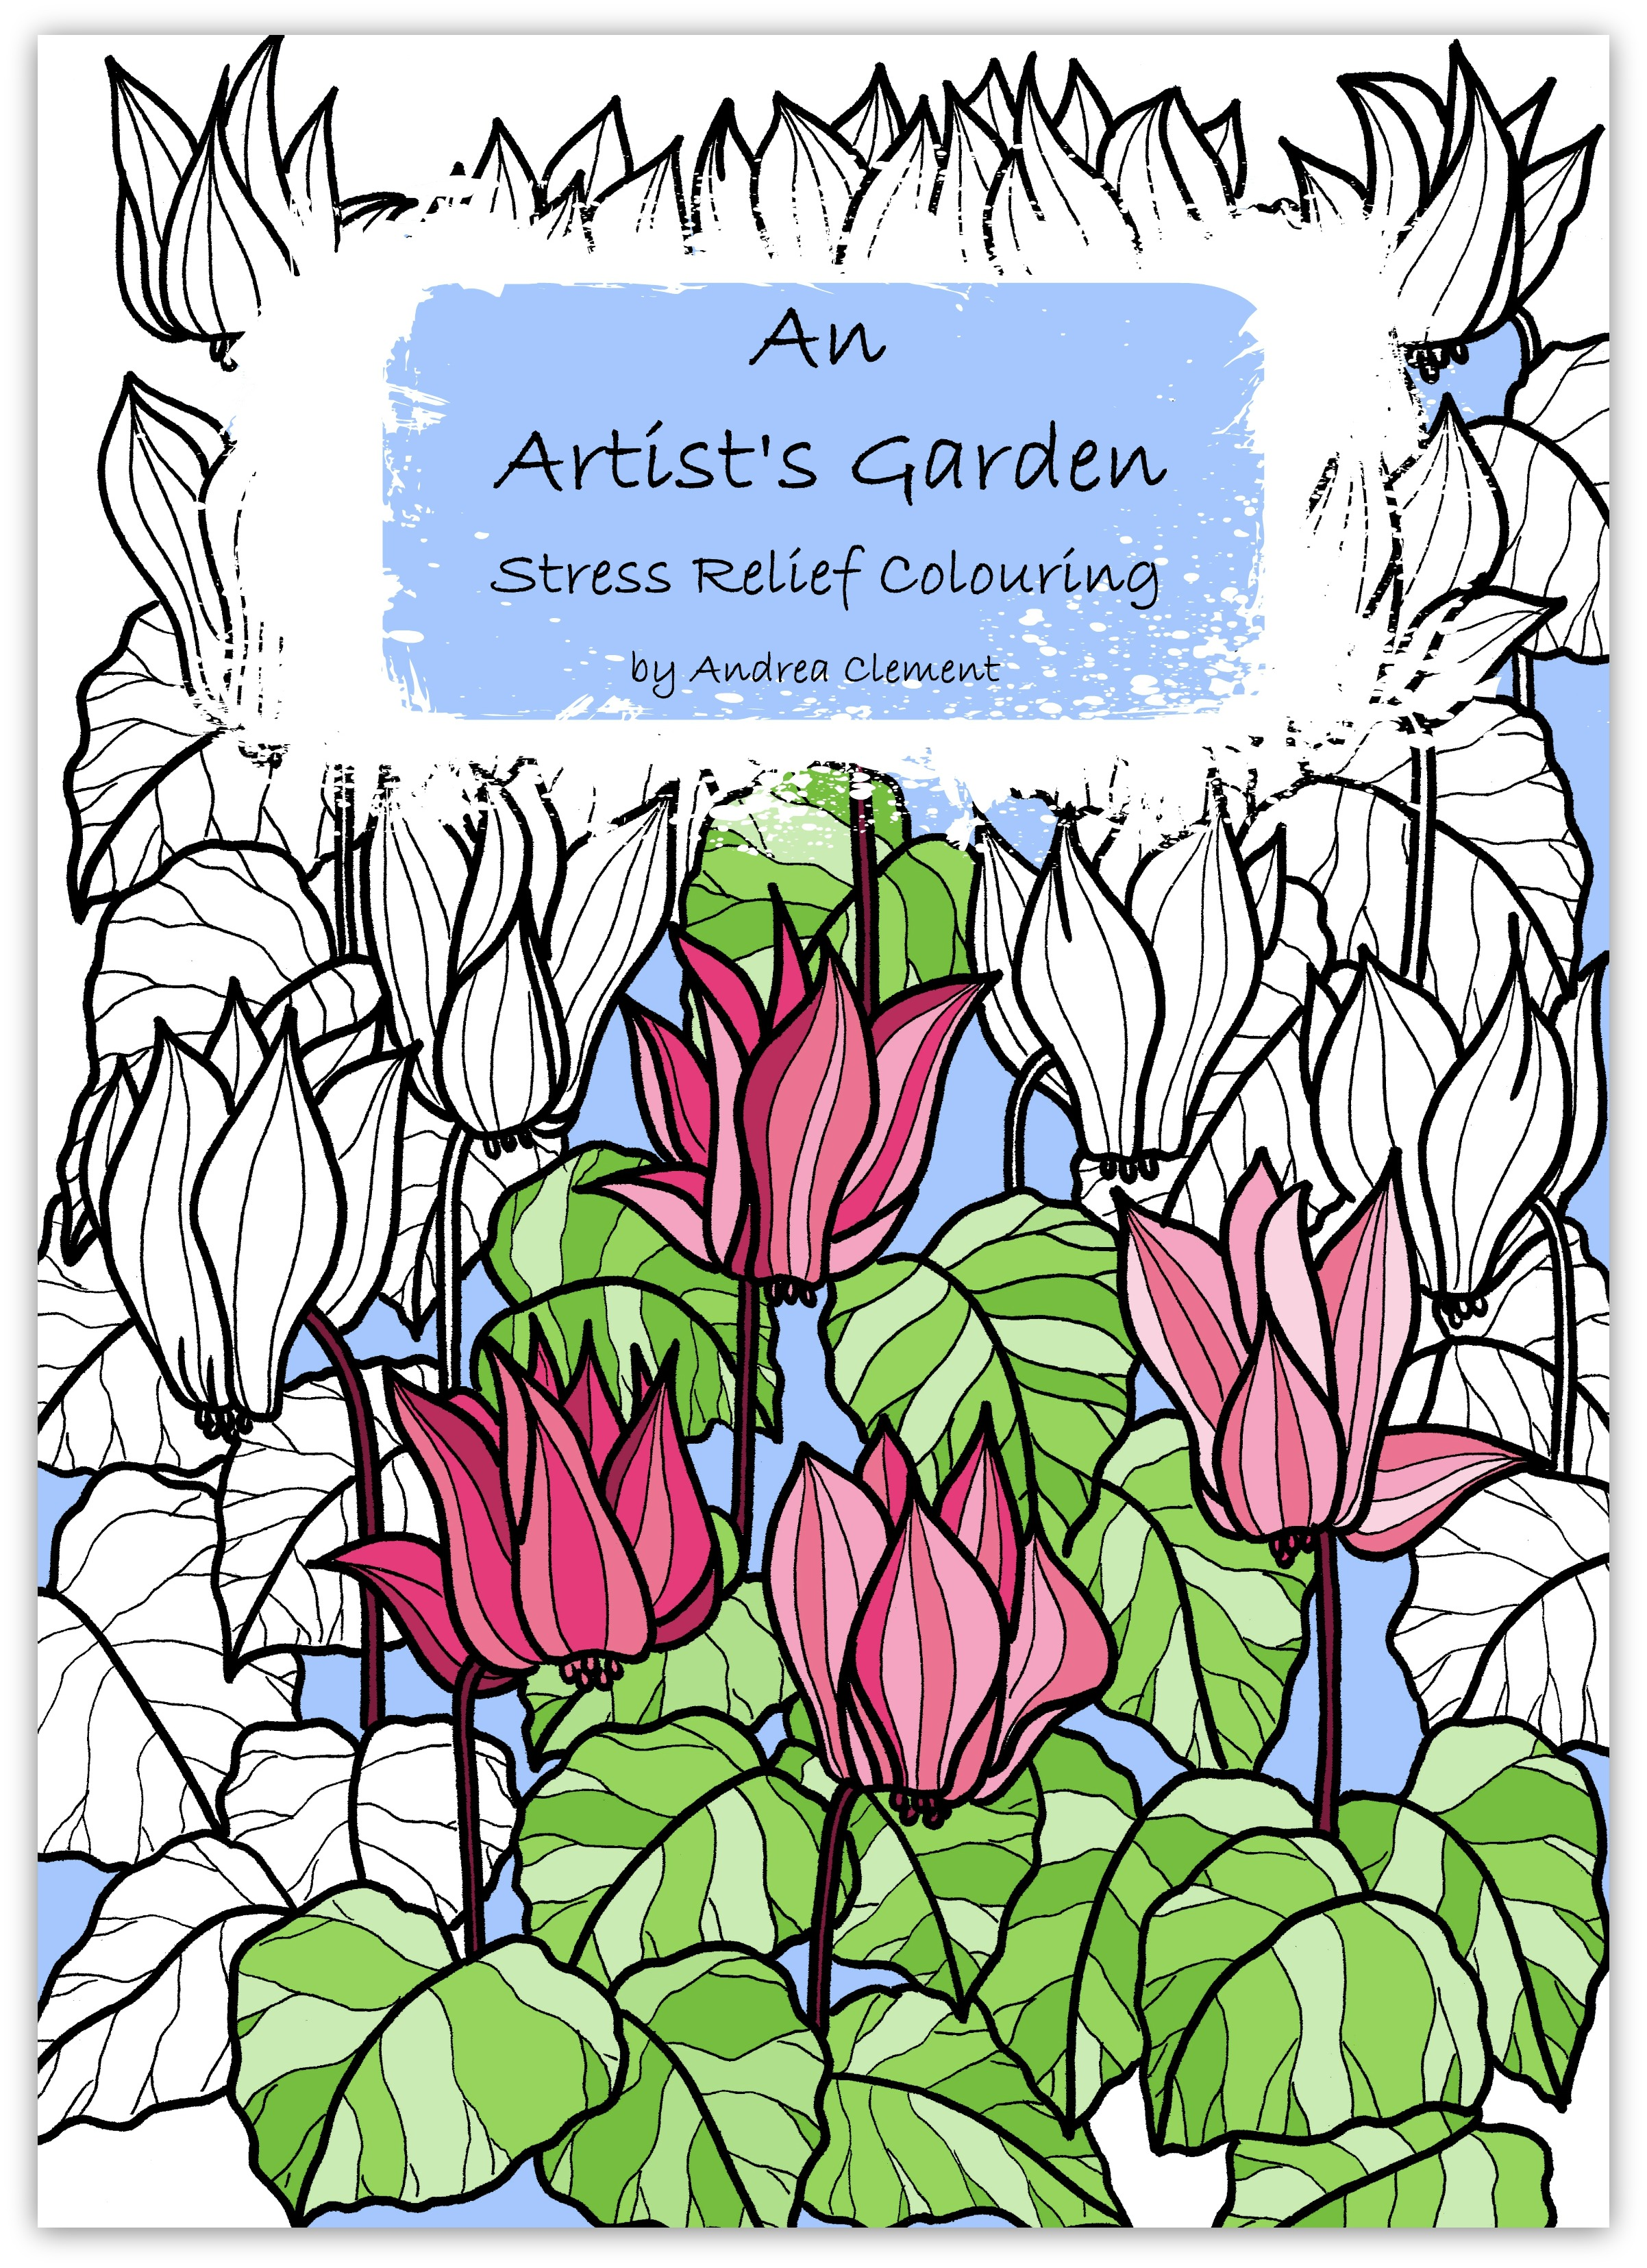 'An Artist's Garden' Stress Relief Colouring Book Cover Andrea Clement Available to buy on Amazon - https://www.amazon.com/Artists-Garden-Stress-Relief-Colouring/dp/1545384541